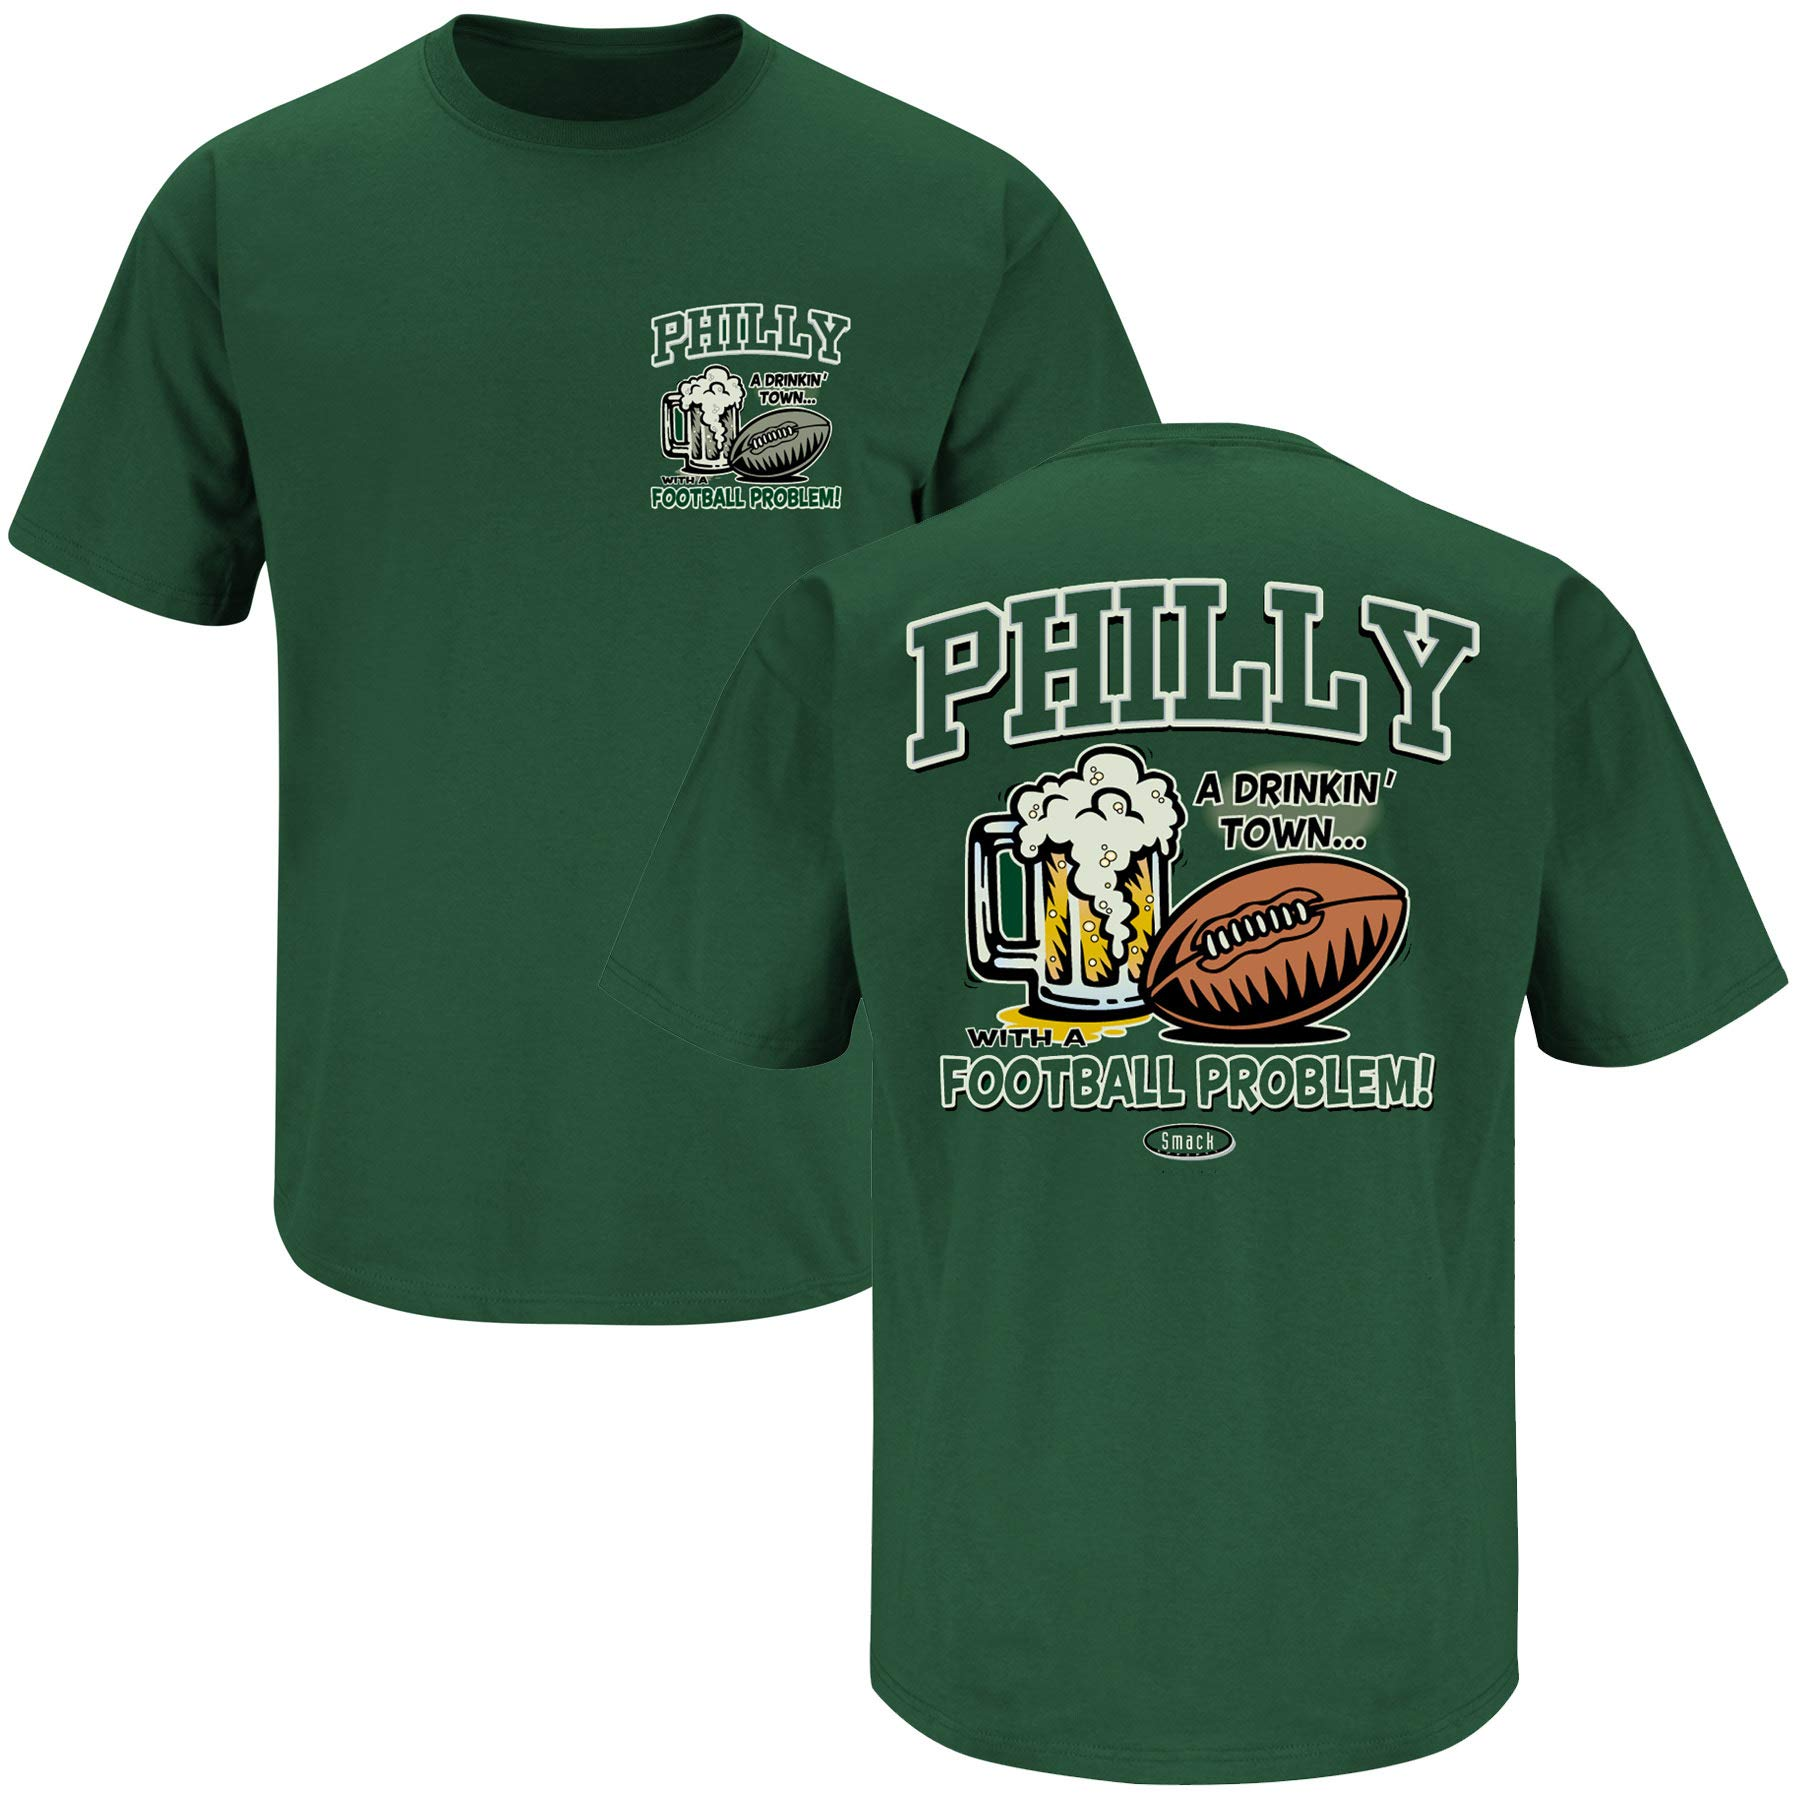 Smack Apparel Philadelphia Football Fans. Philly Drinking Town with a Football Problem Green T-Shirt (Sm-5X)